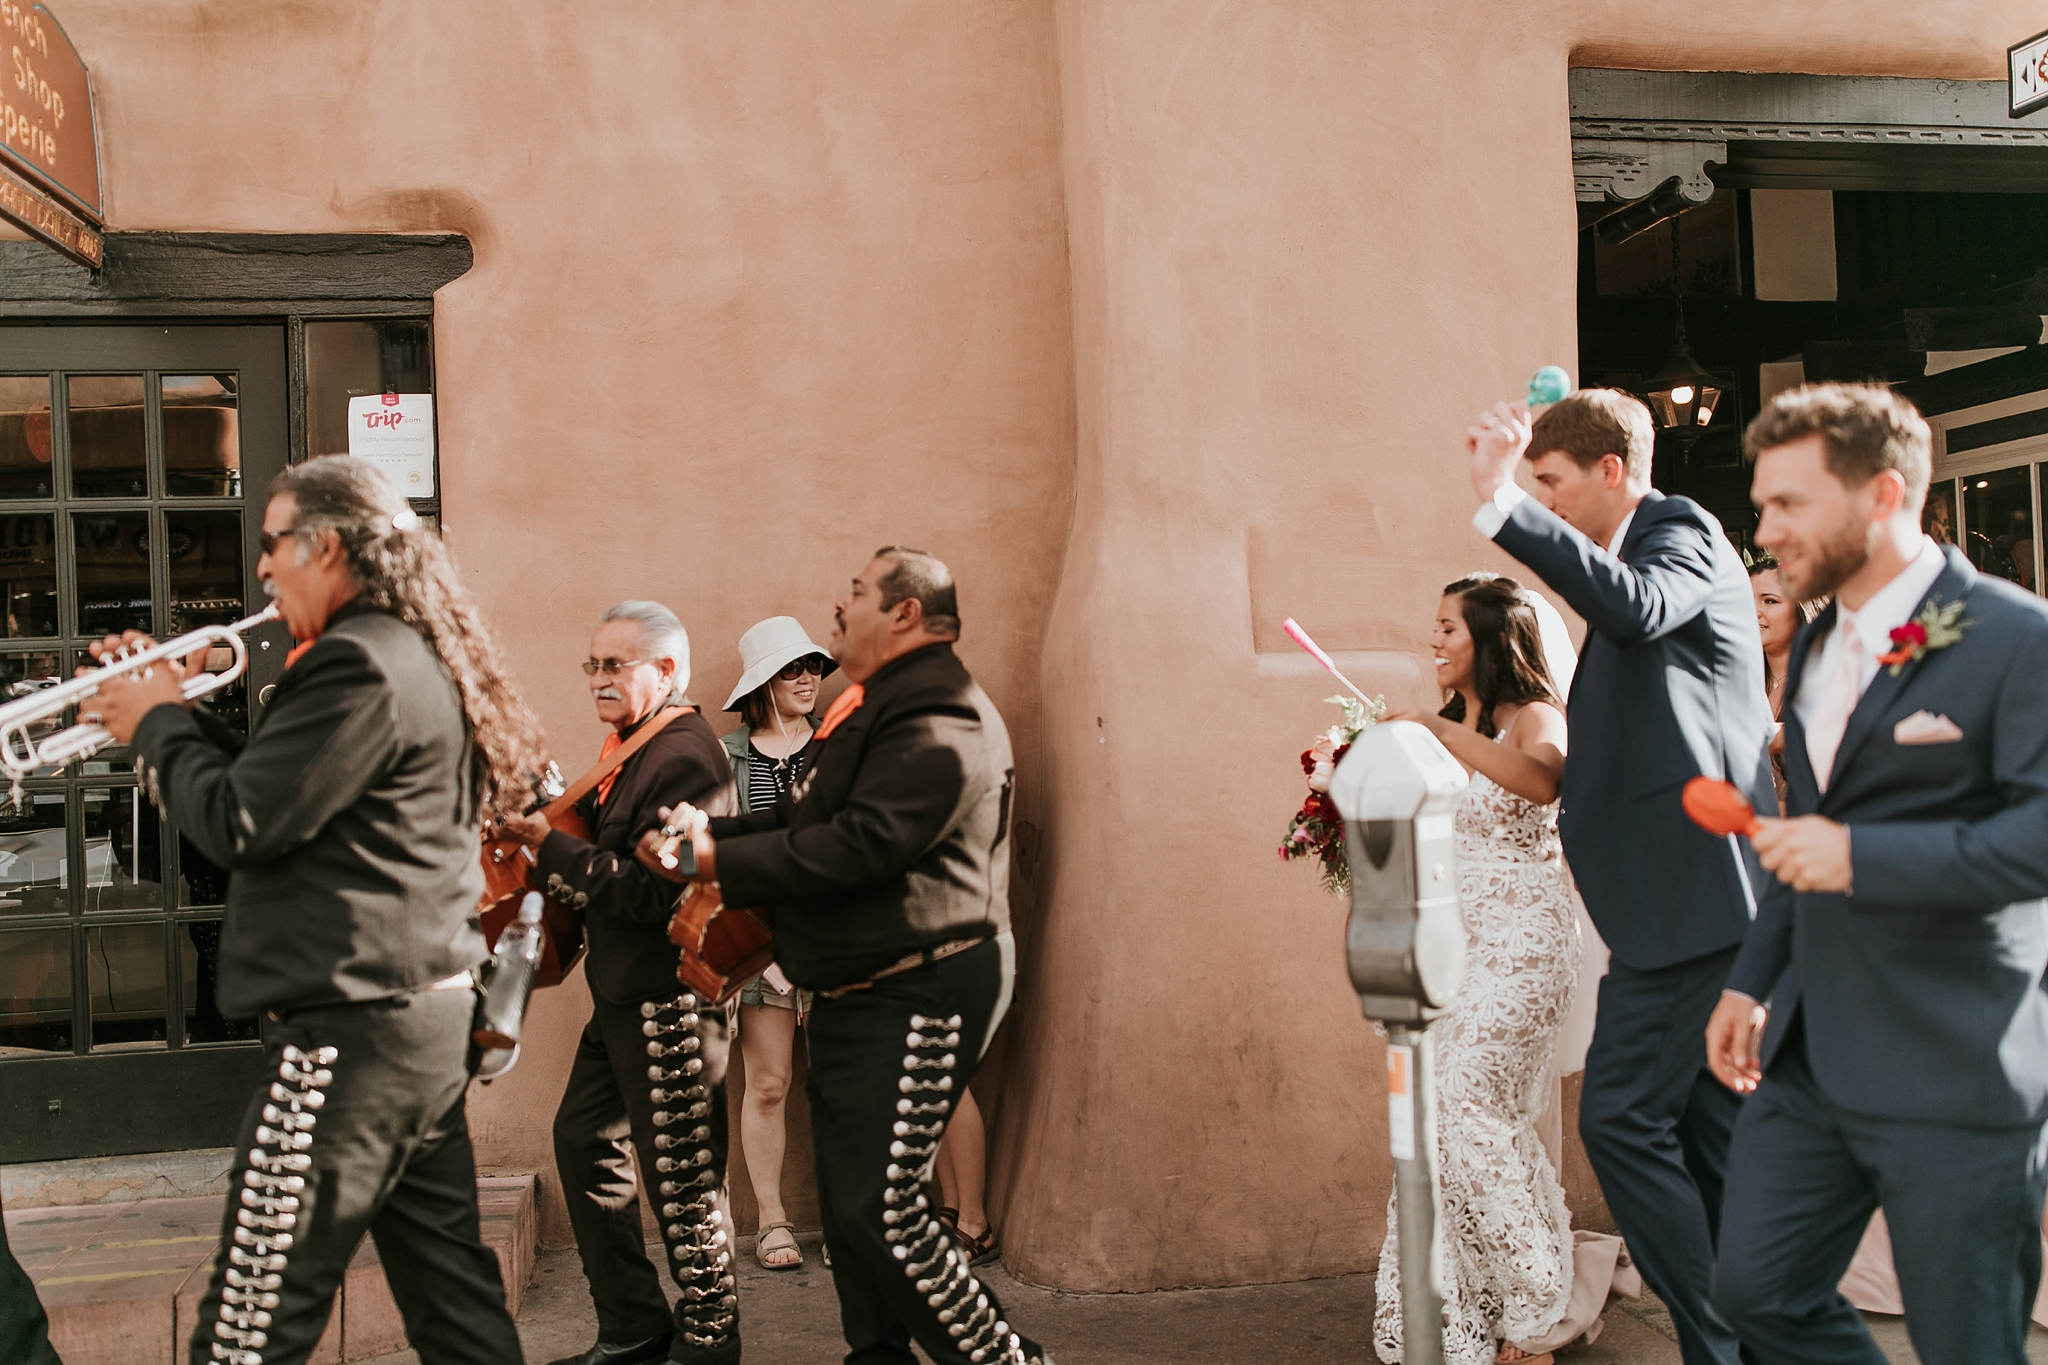 Alicia+lucia+photography+-+albuquerque+wedding+photographer+-+santa+fe+wedding+photography+-+new+mexico+wedding+photographer+-+new+mexico+wedding+-+santa+fe+wedding+-+albuquerque+wedding+-+southwest+wedding+traditions_0009.jpg